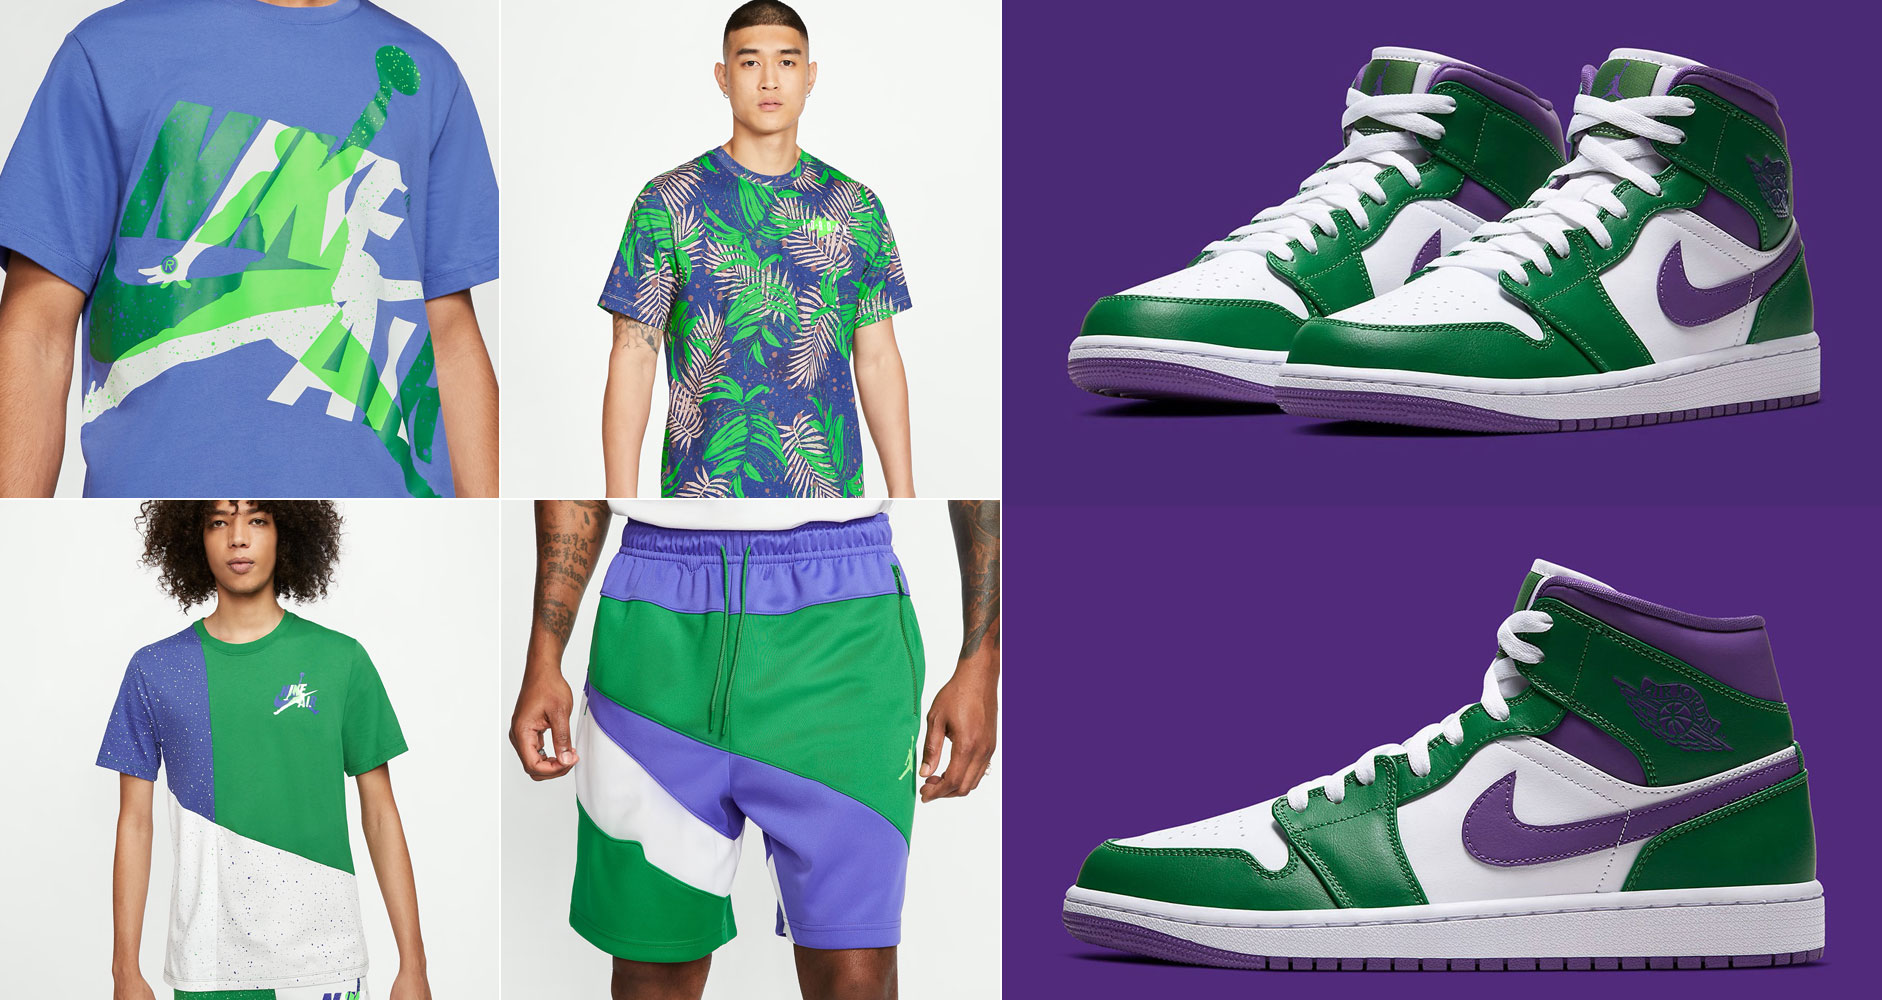 air-jordan-1-mid-hulk-clothing-outfits